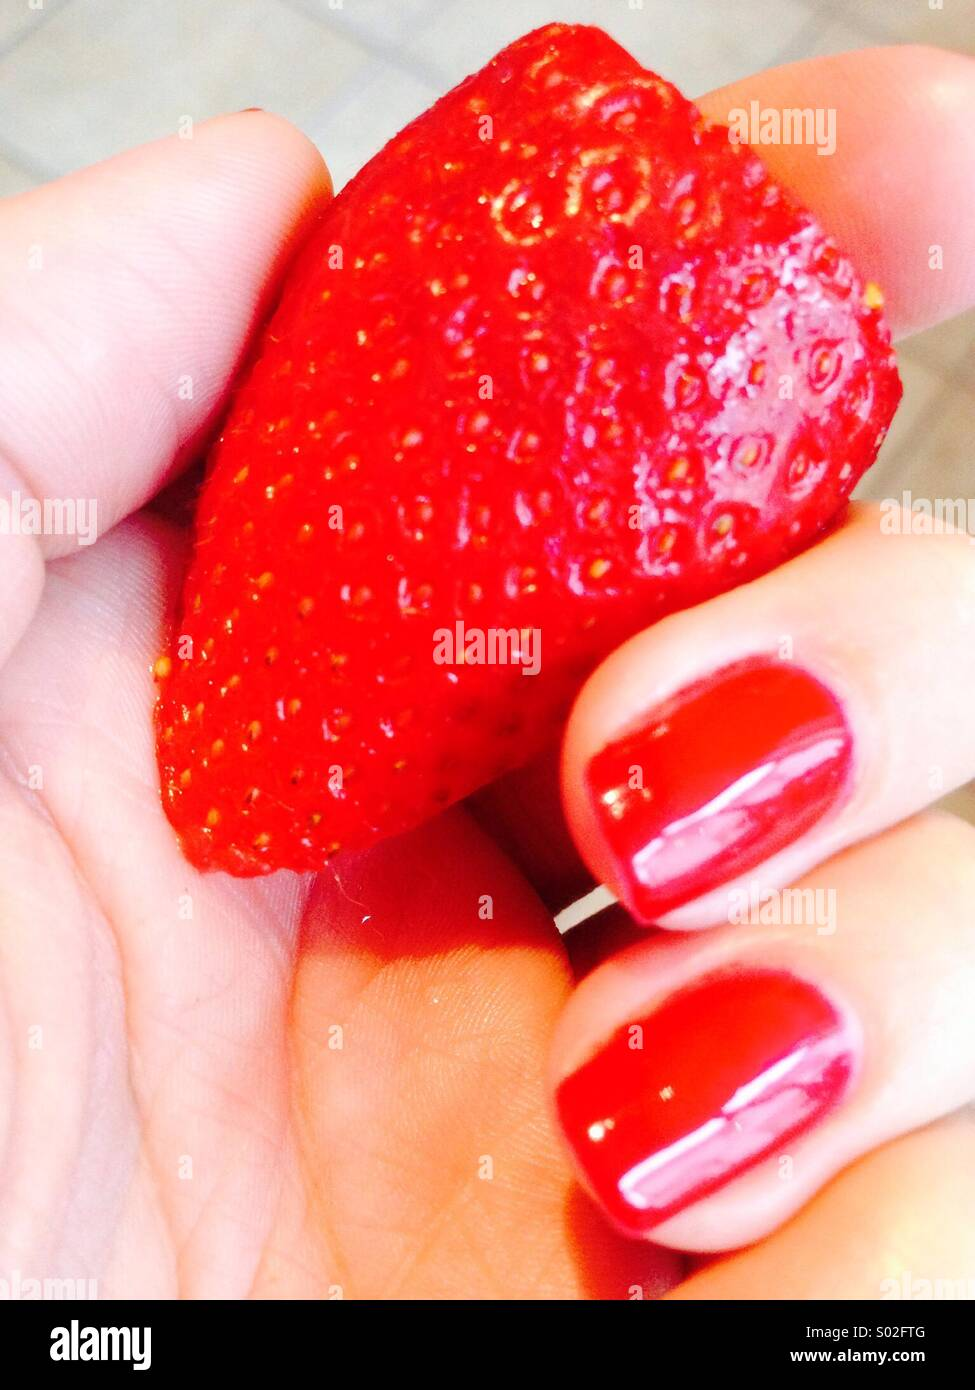 Strawberry a tenu à la main avec des ongles peints en rouge Photo Stock